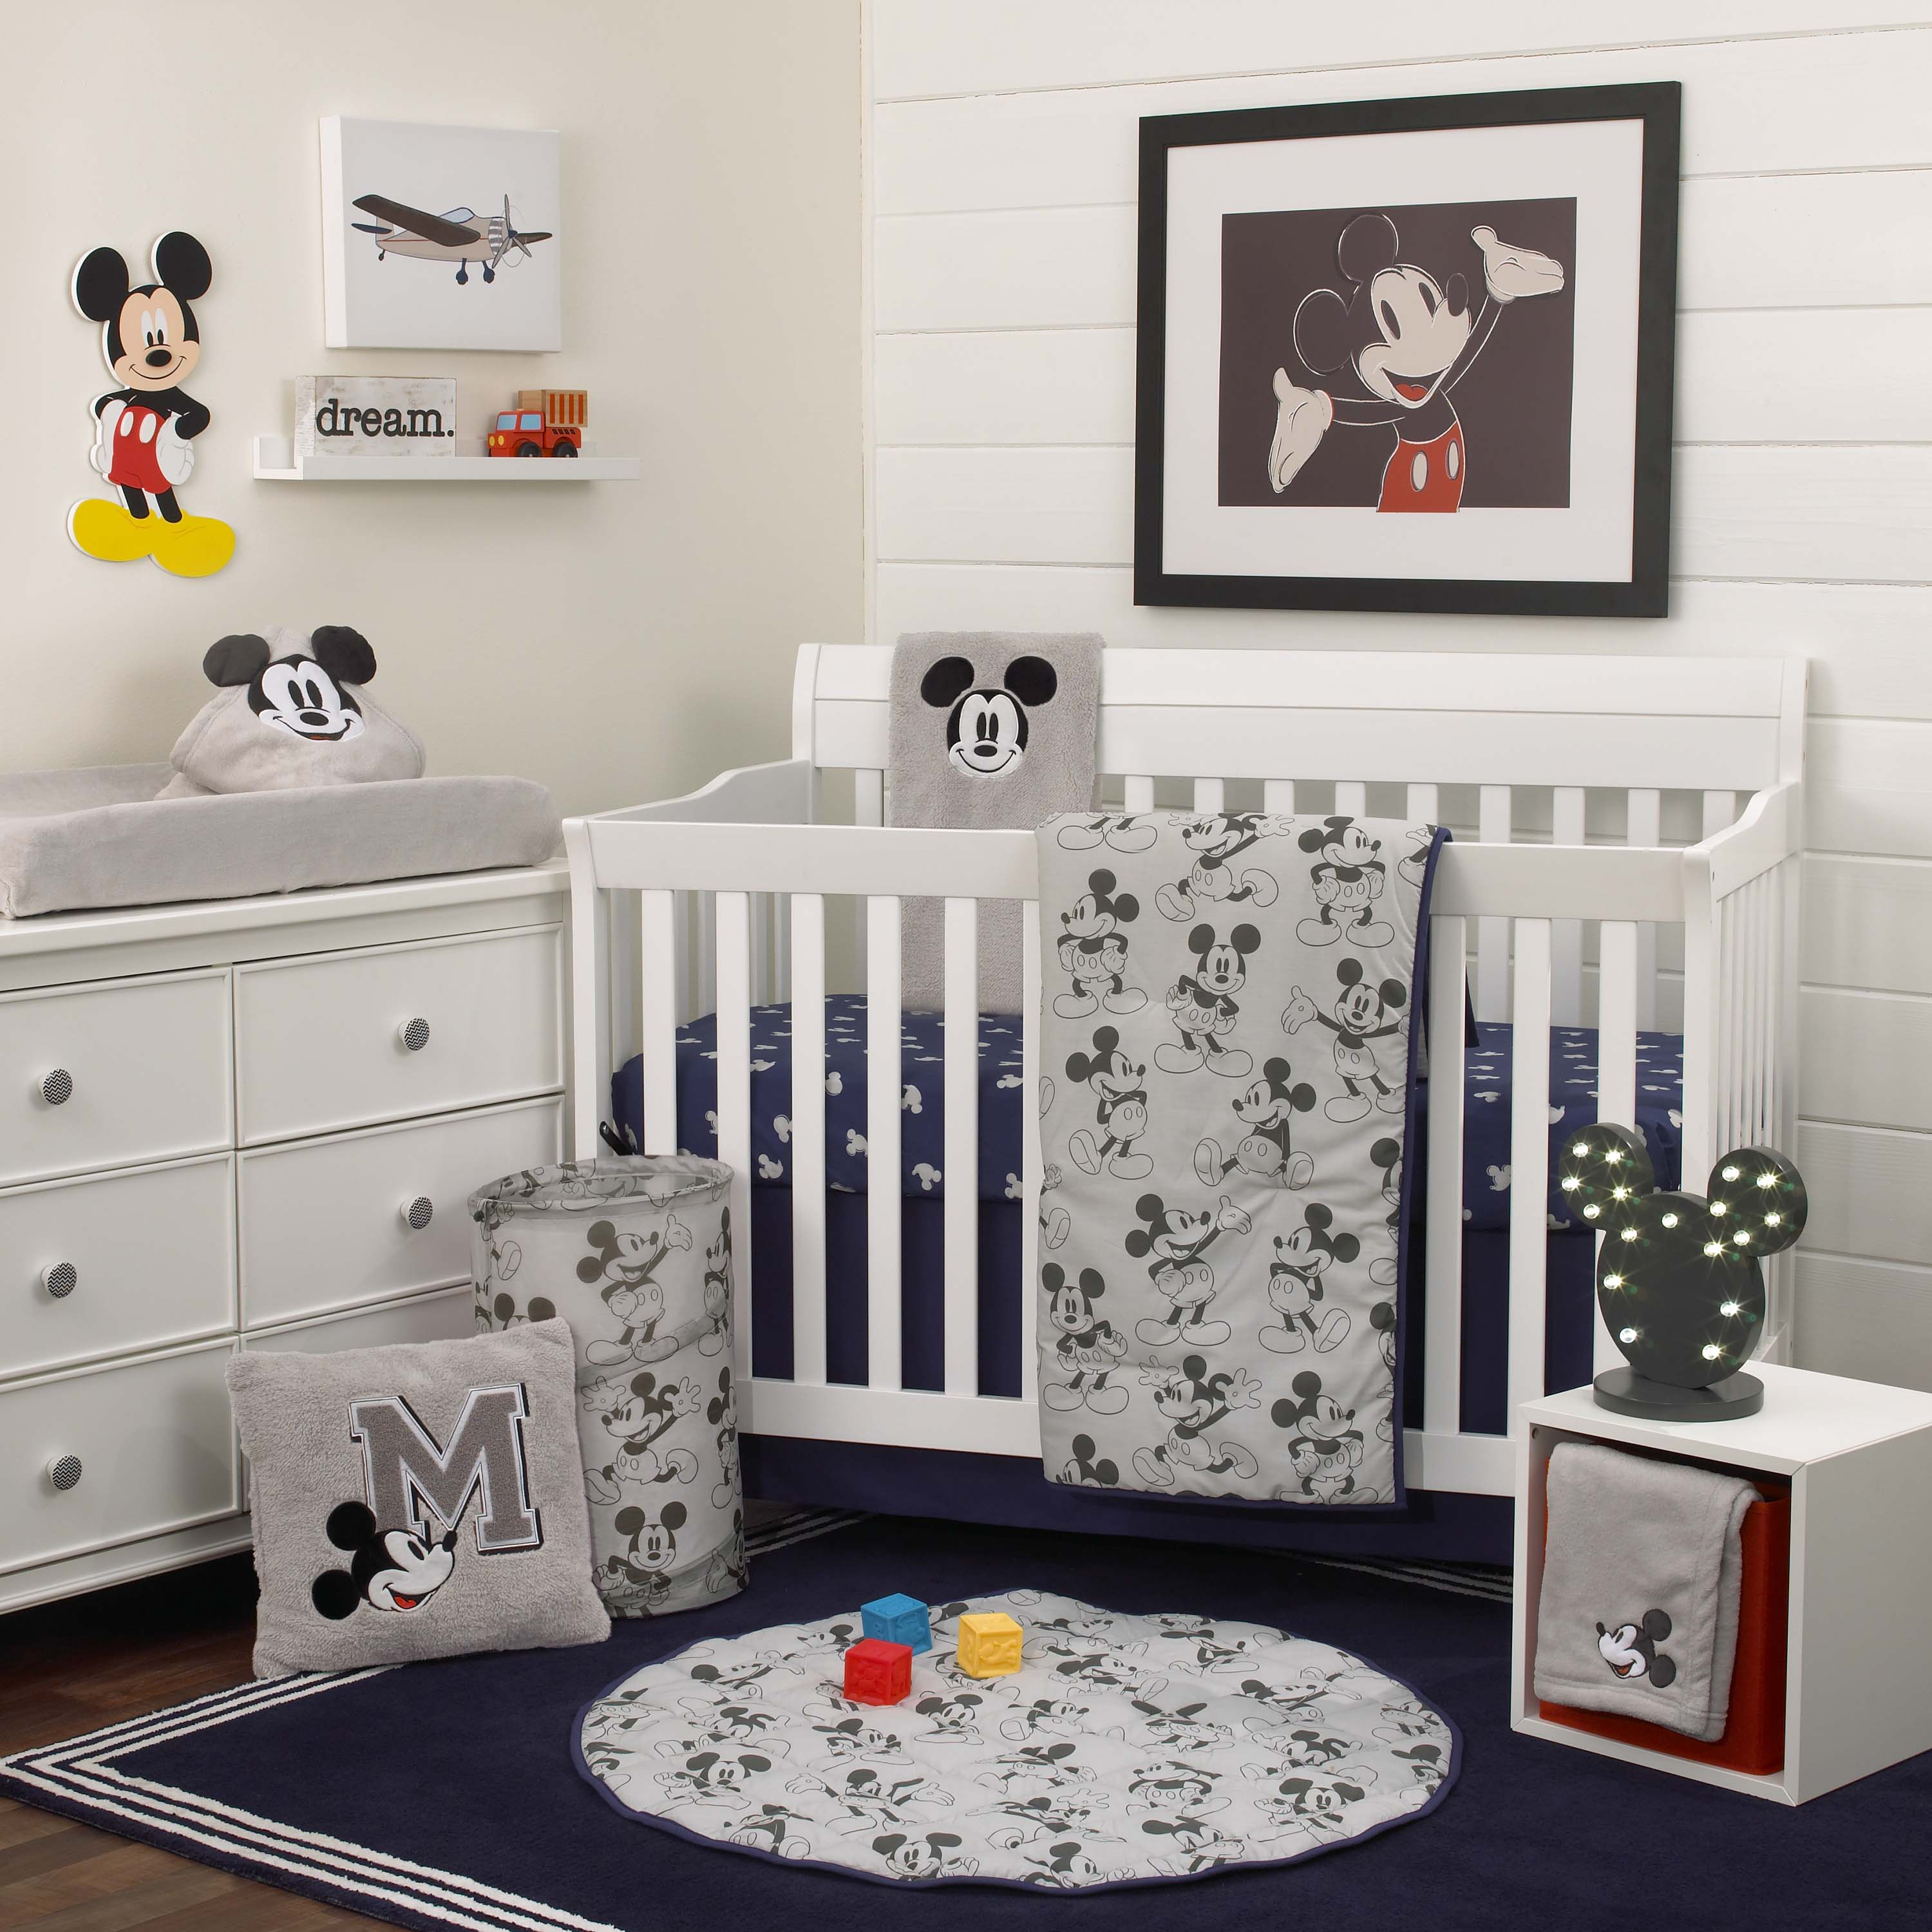 Disney Mickey Mouse 6 Piece Nursery Crib Bedding Set, Comforter, Two 100% Cotton Fitted Crib SHeets, Dust... by Crown Crafts Infant Products, Inc.